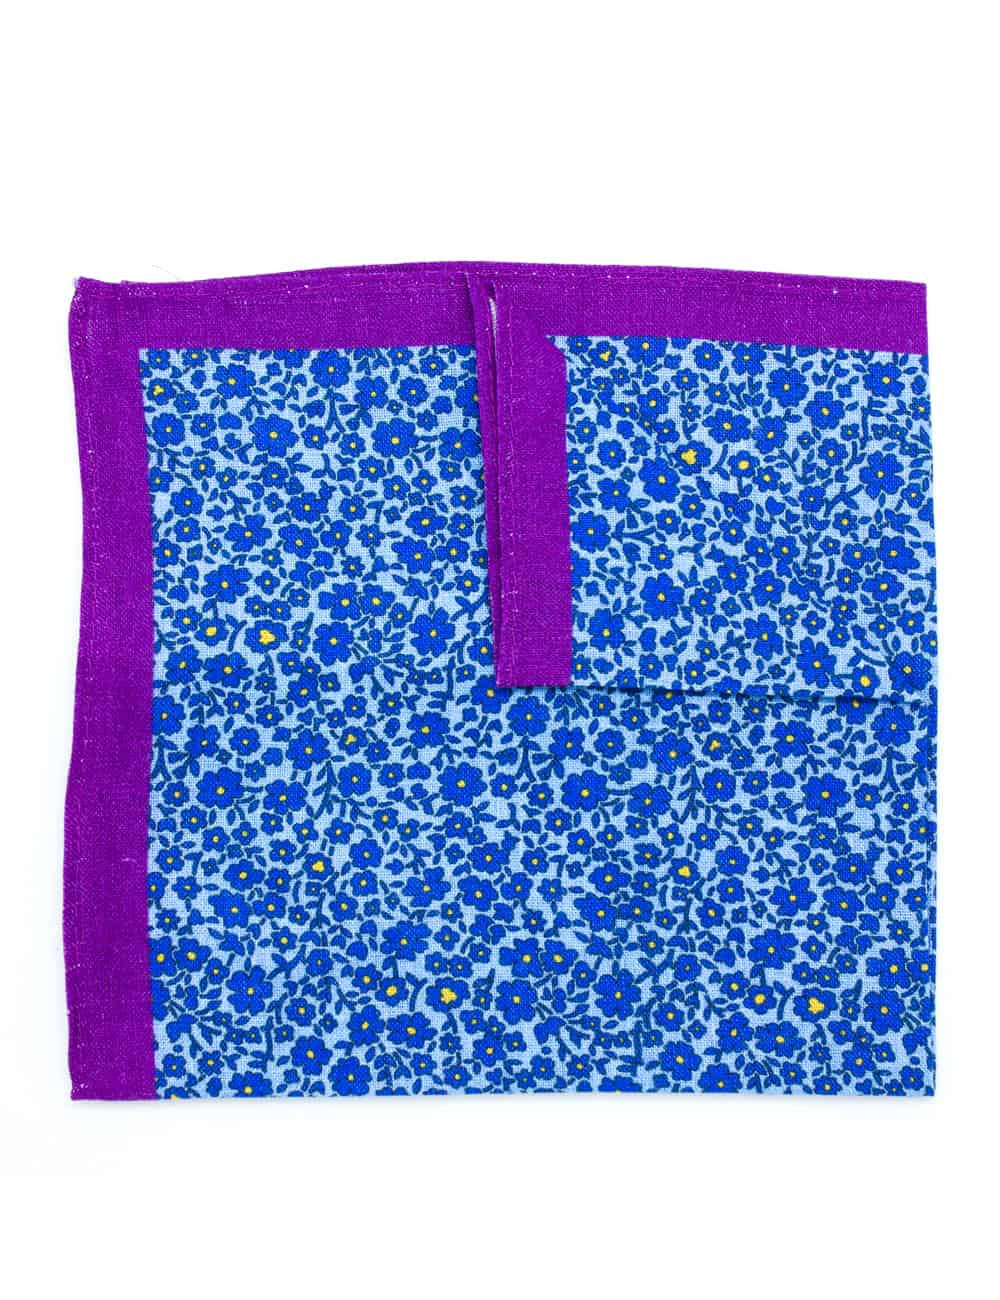 d55a7510aa332 Purple with Blue Floral Print Linen Pocket Square PSQ50.8 - The ...